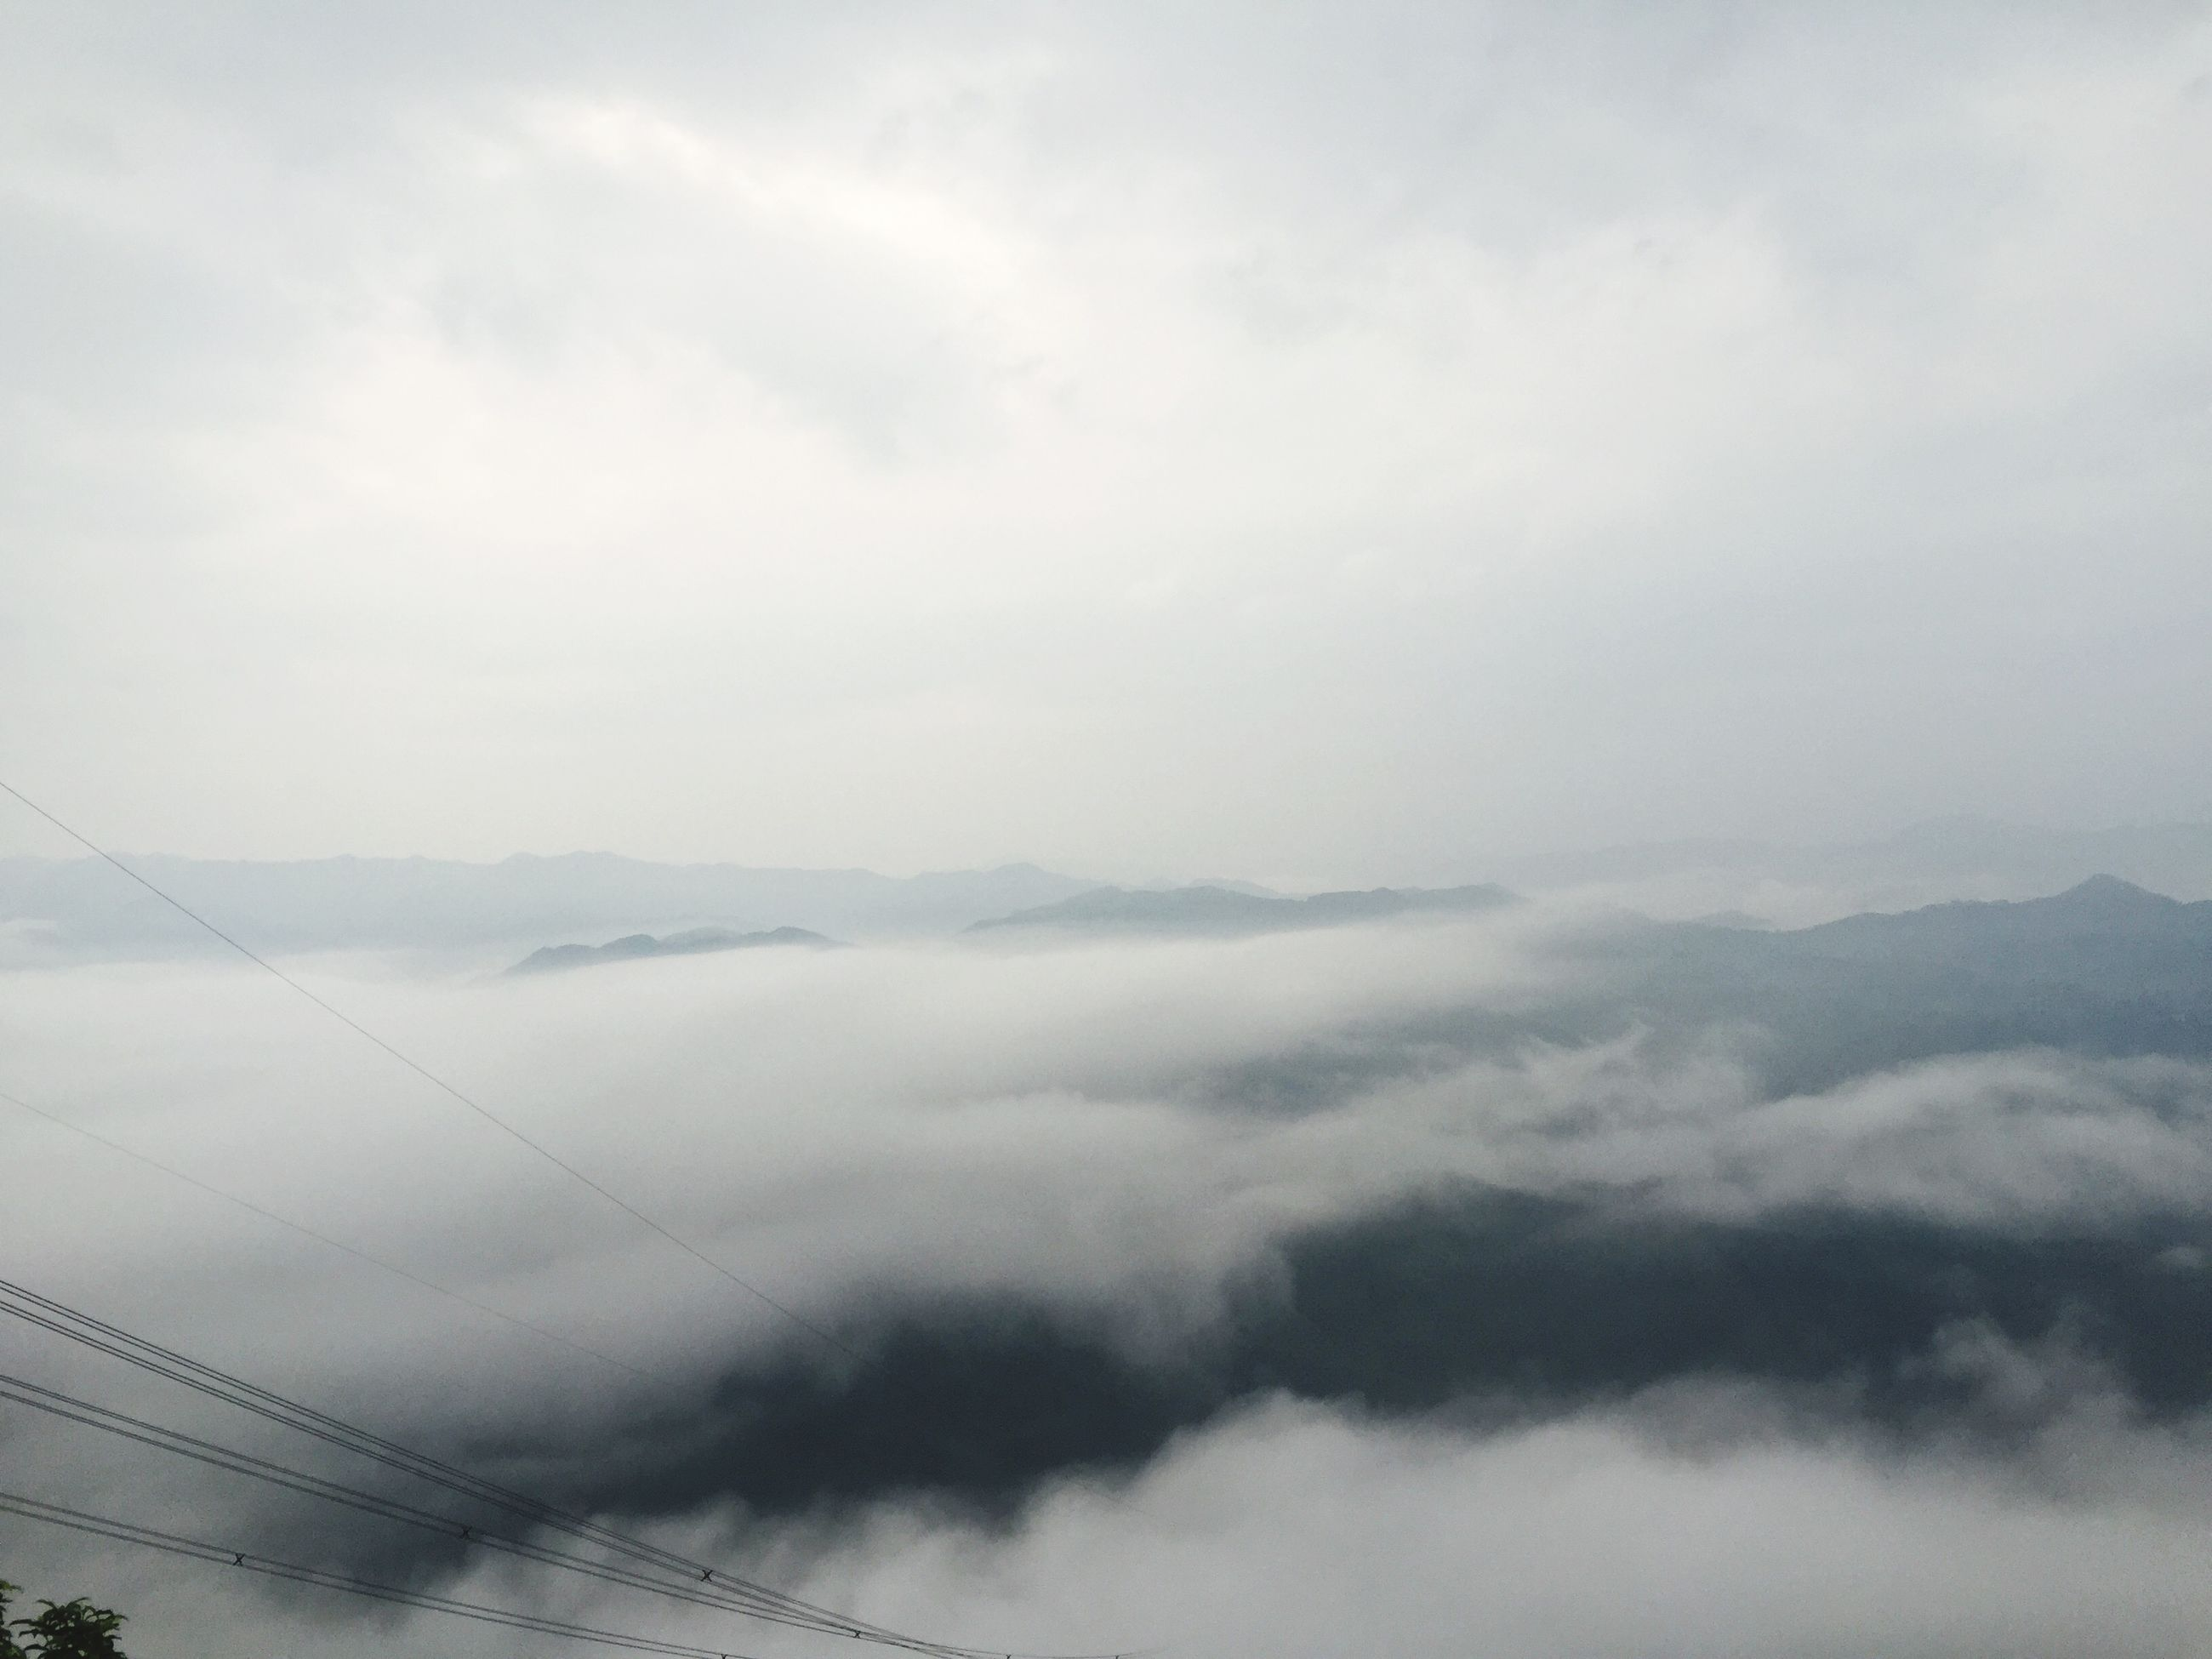 sky, cloud - sky, cloudy, tranquility, scenics, tranquil scene, beauty in nature, weather, nature, cloudscape, cloud, low angle view, white color, day, outdoors, no people, overcast, idyllic, fog, landscape